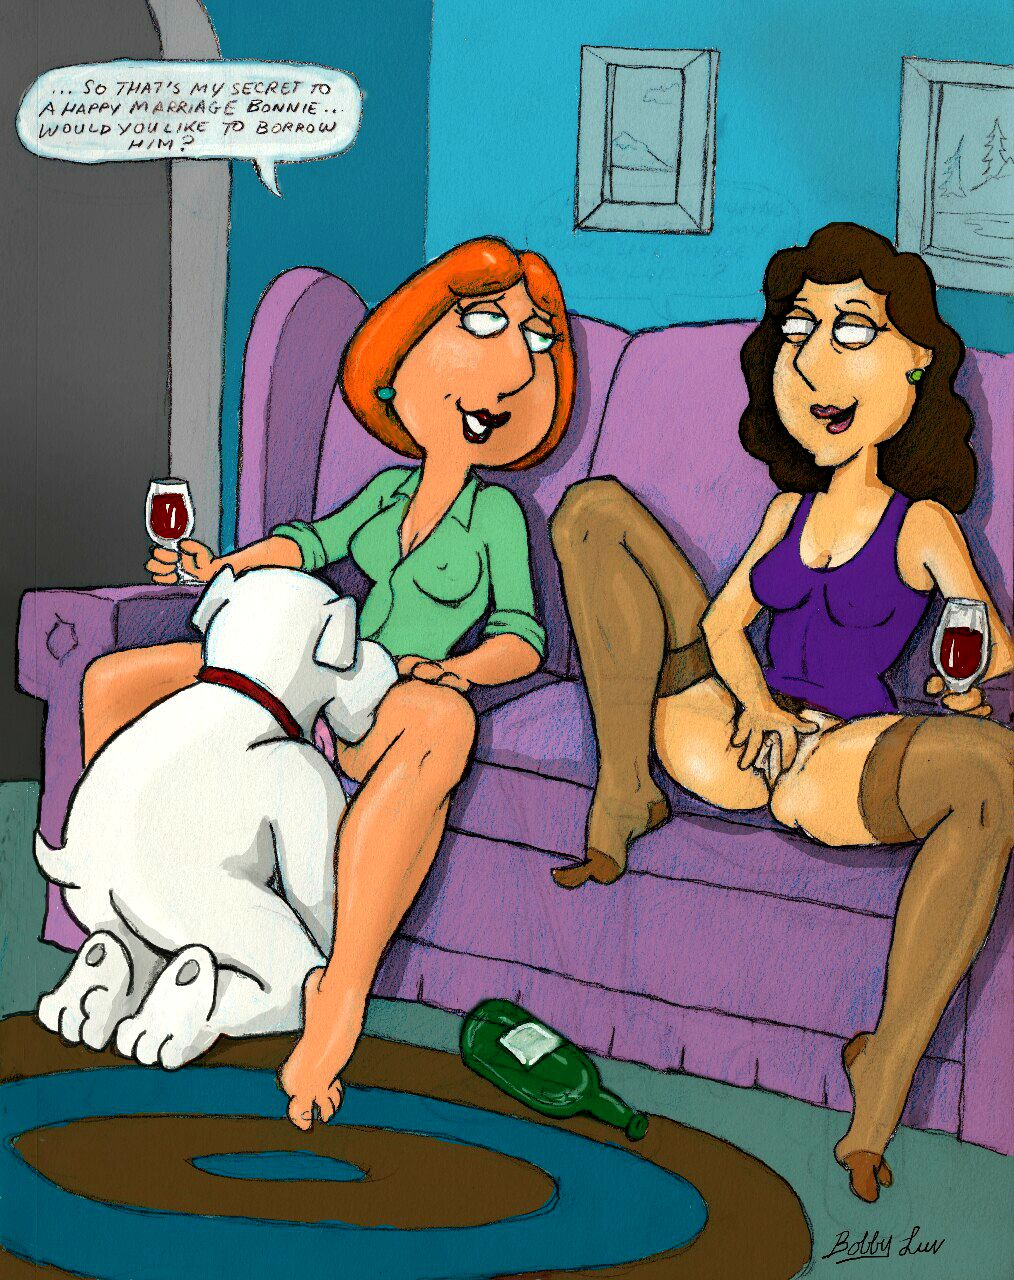 Lois griffin eating pussy